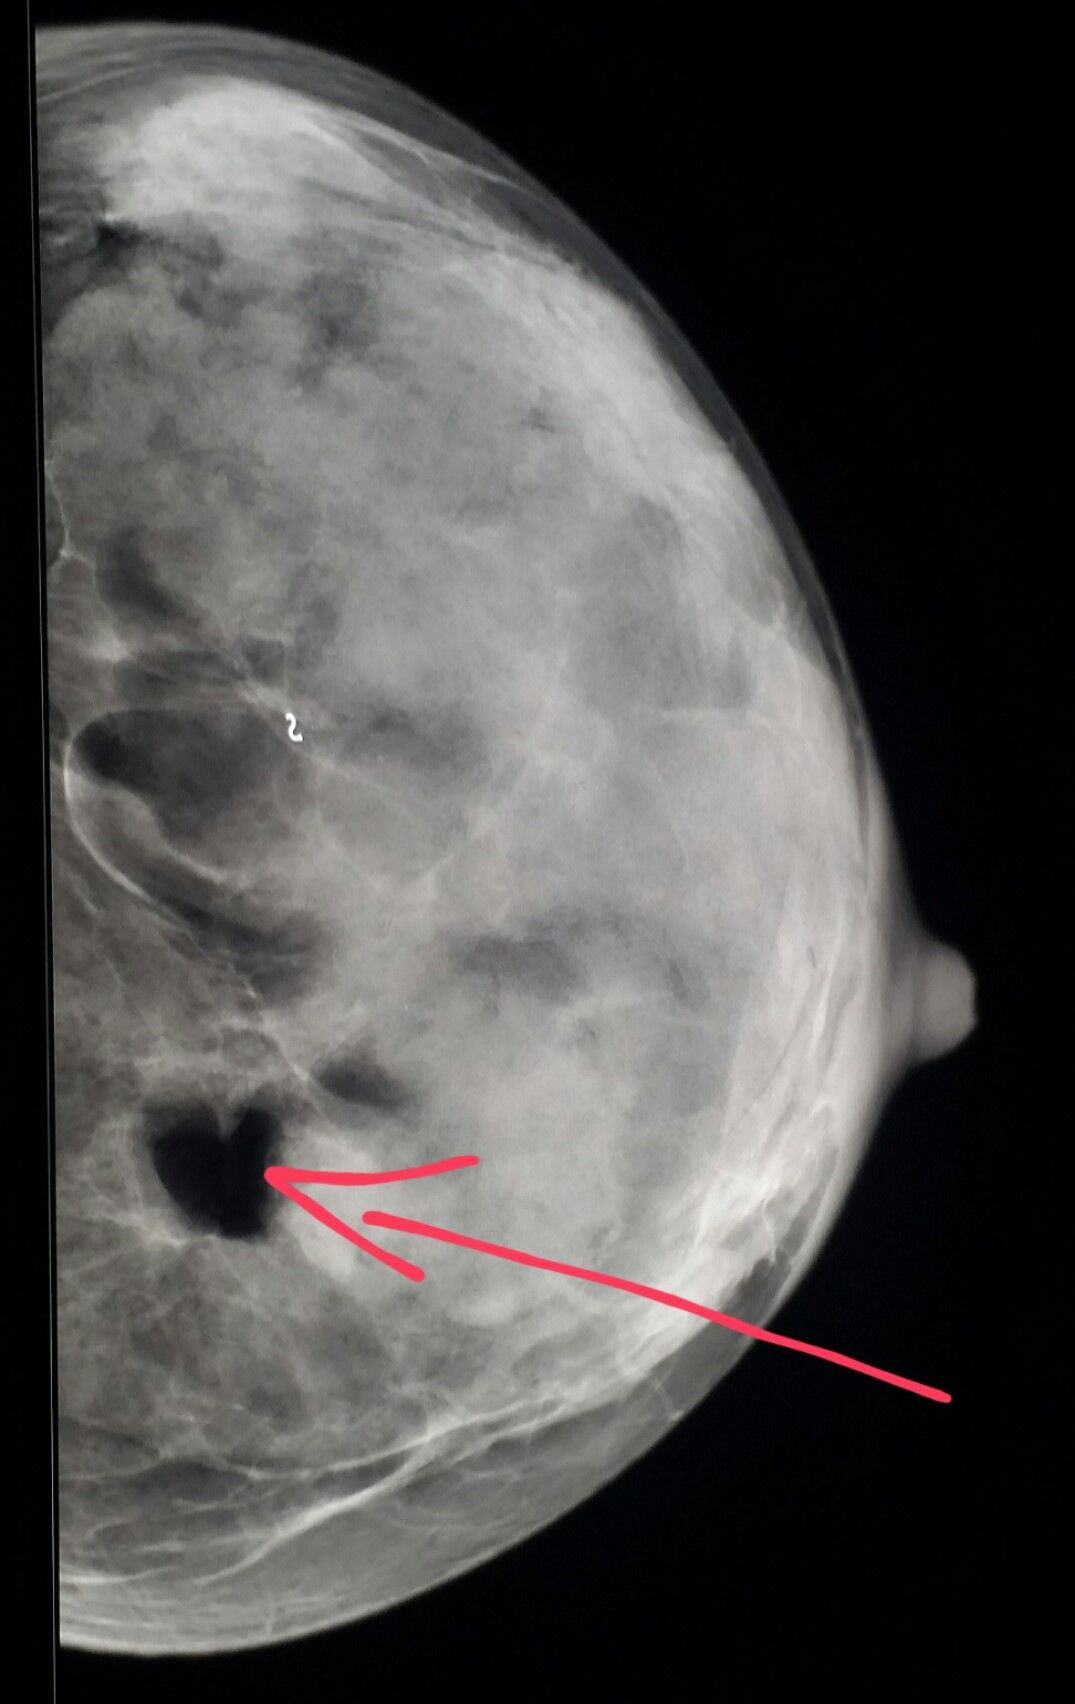 breast mammogram shows a benign fatty mass lipoma surrounded